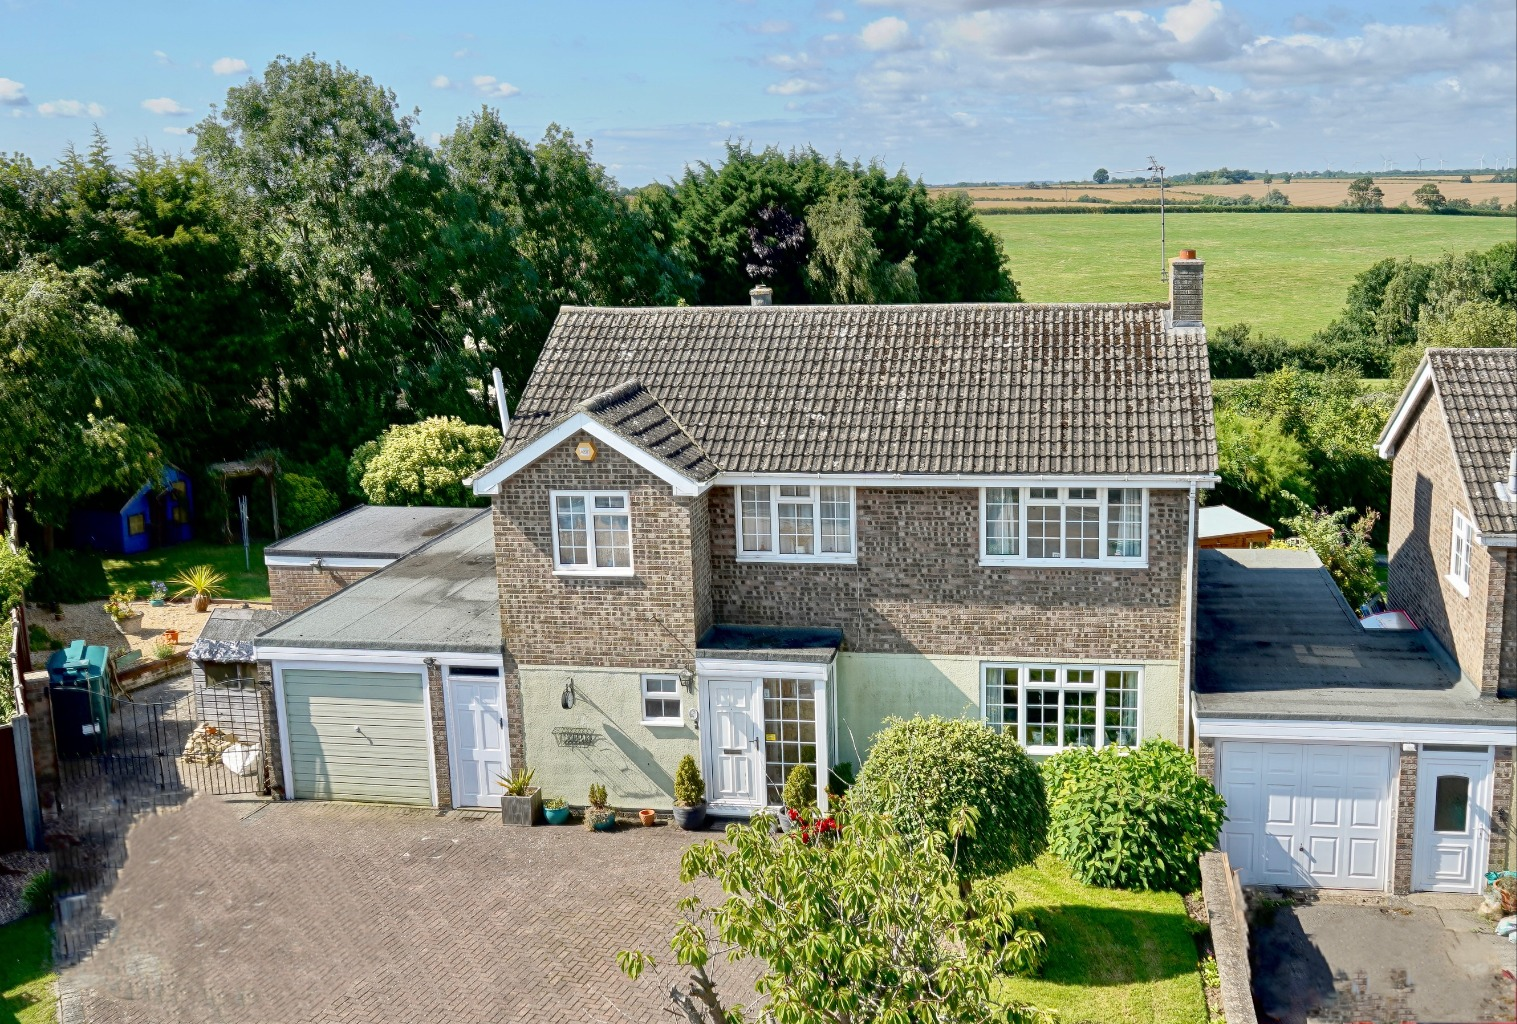 4 bed  for sale in Yeomans Close, Huntingdon, PE28